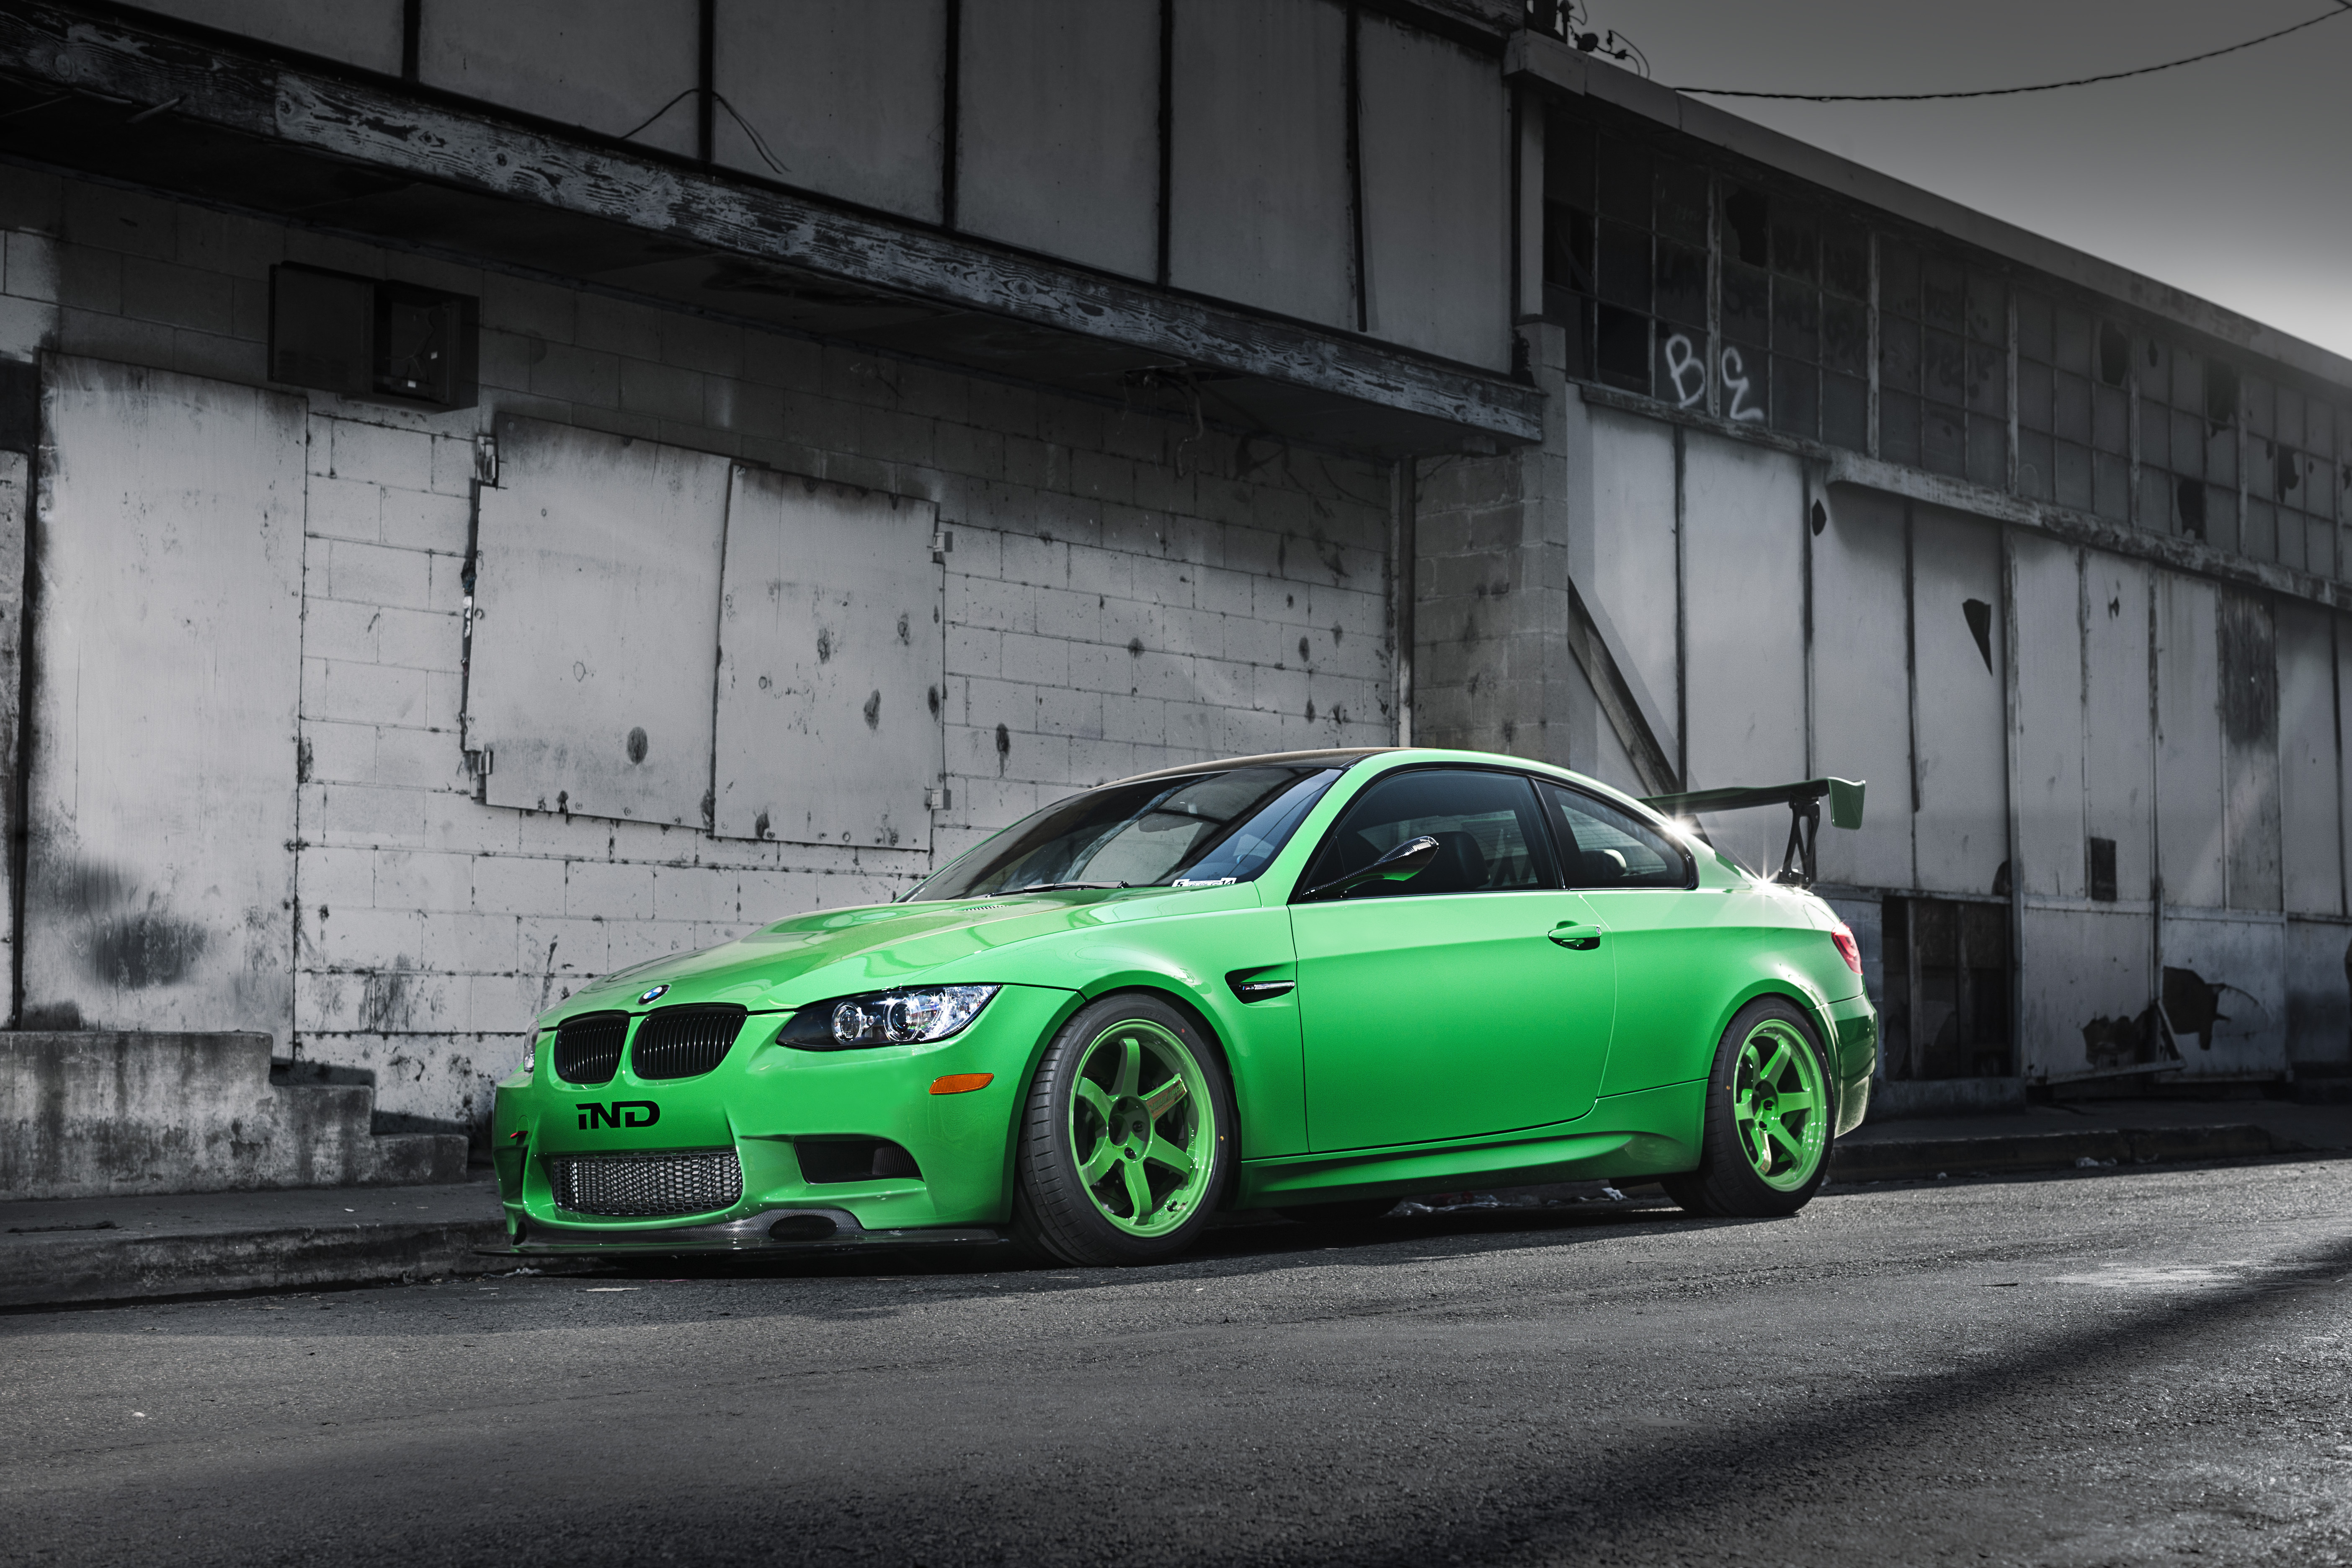 66629 free download Green wallpapers for phone, Cars, Bmw, M3, E92, Side View, Wing, Shadow, Building Green images and screensavers for mobile